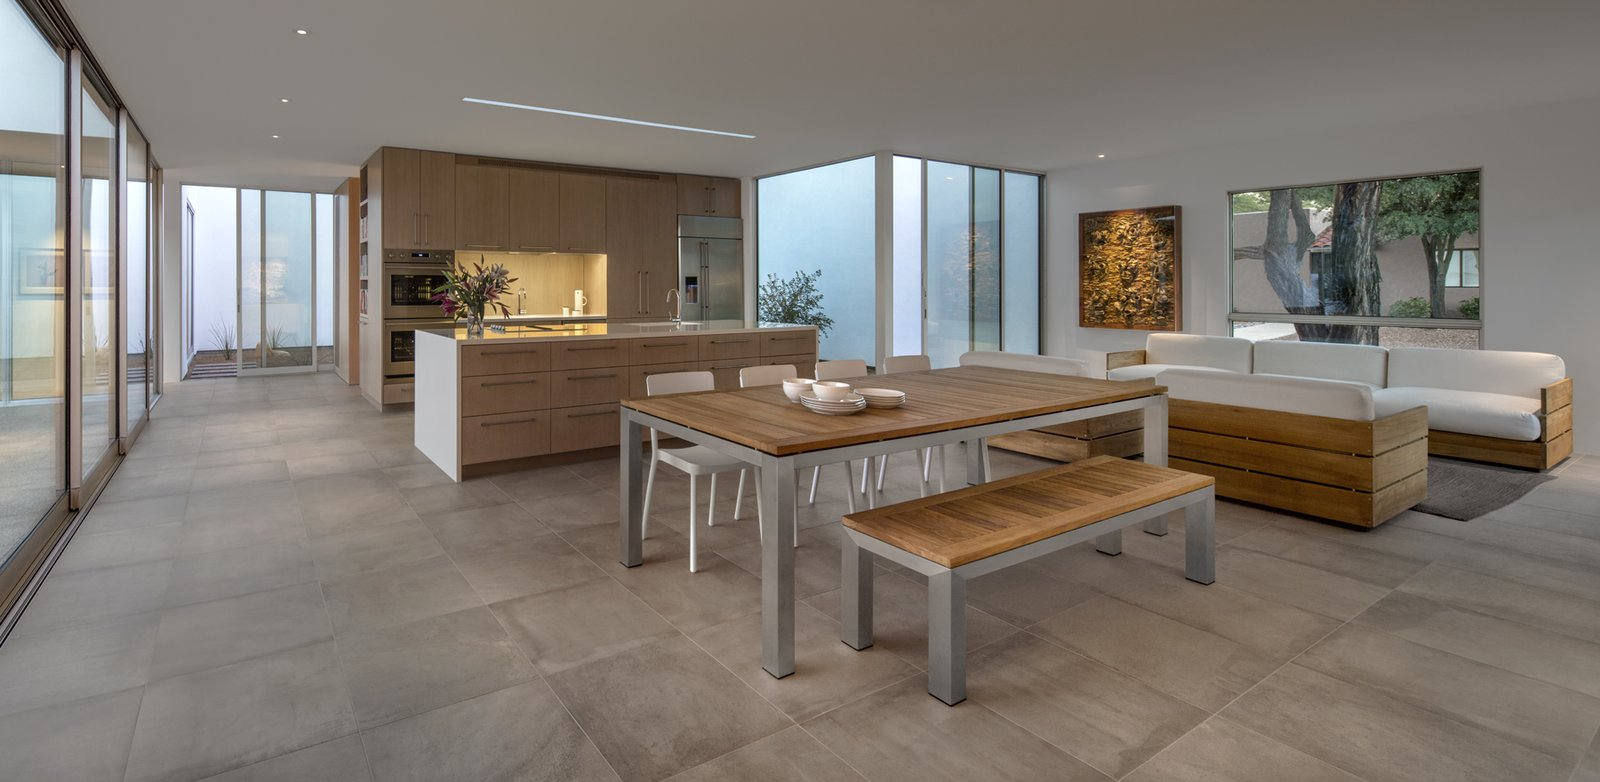 Metal, Sliding Door Type, Dining Room, Bench, Table, Ceiling Lighting, and Porcelain Tile Floor Huge panels of glass give the clients the ability to see into any number of the home's courtyards at once.  Custom Cat House